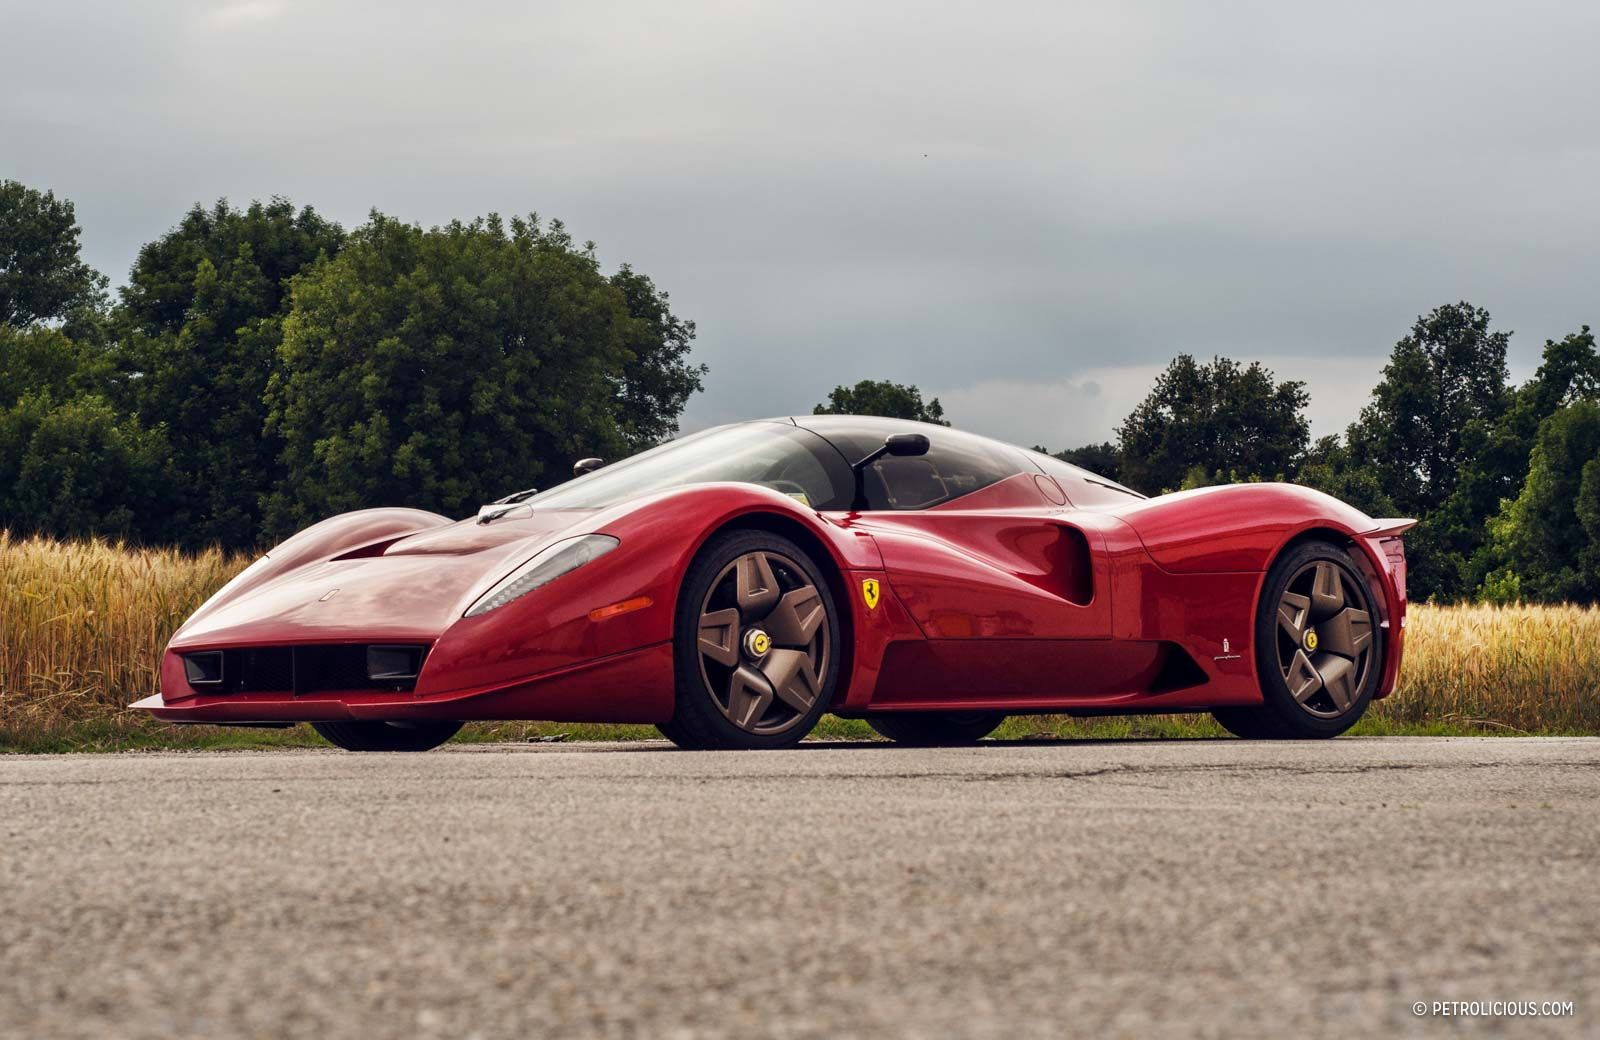 Revisiting The Ferrari P4 5 The Ultimate Modern Dream Car Petrolicious Dream Cars Ferrari Super Cars